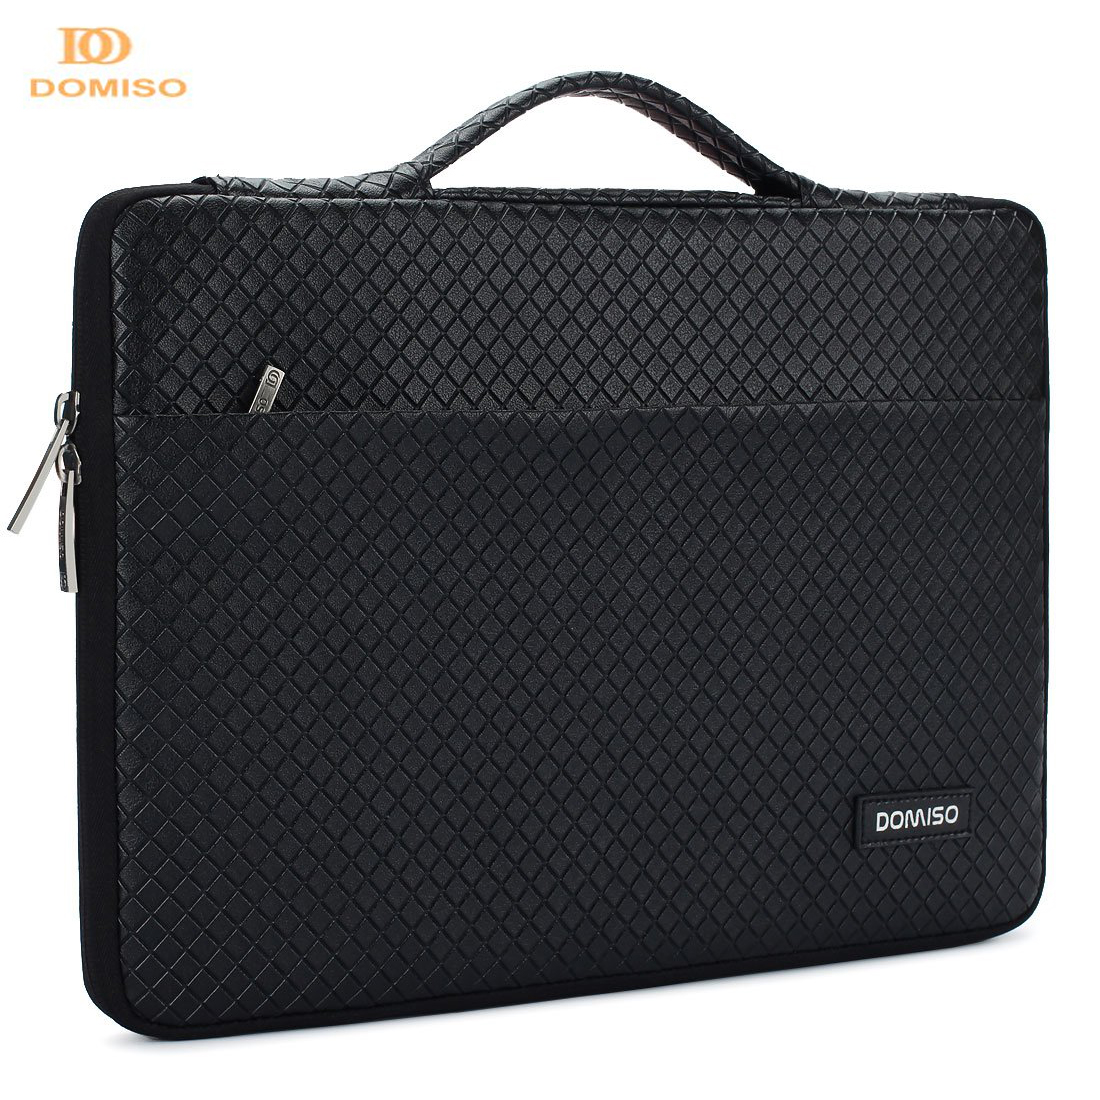 DOMISO 15 6 Inch Waterproof Laptop Sleeve with Handle Portable Carrying Case Silver Gray Bright Black